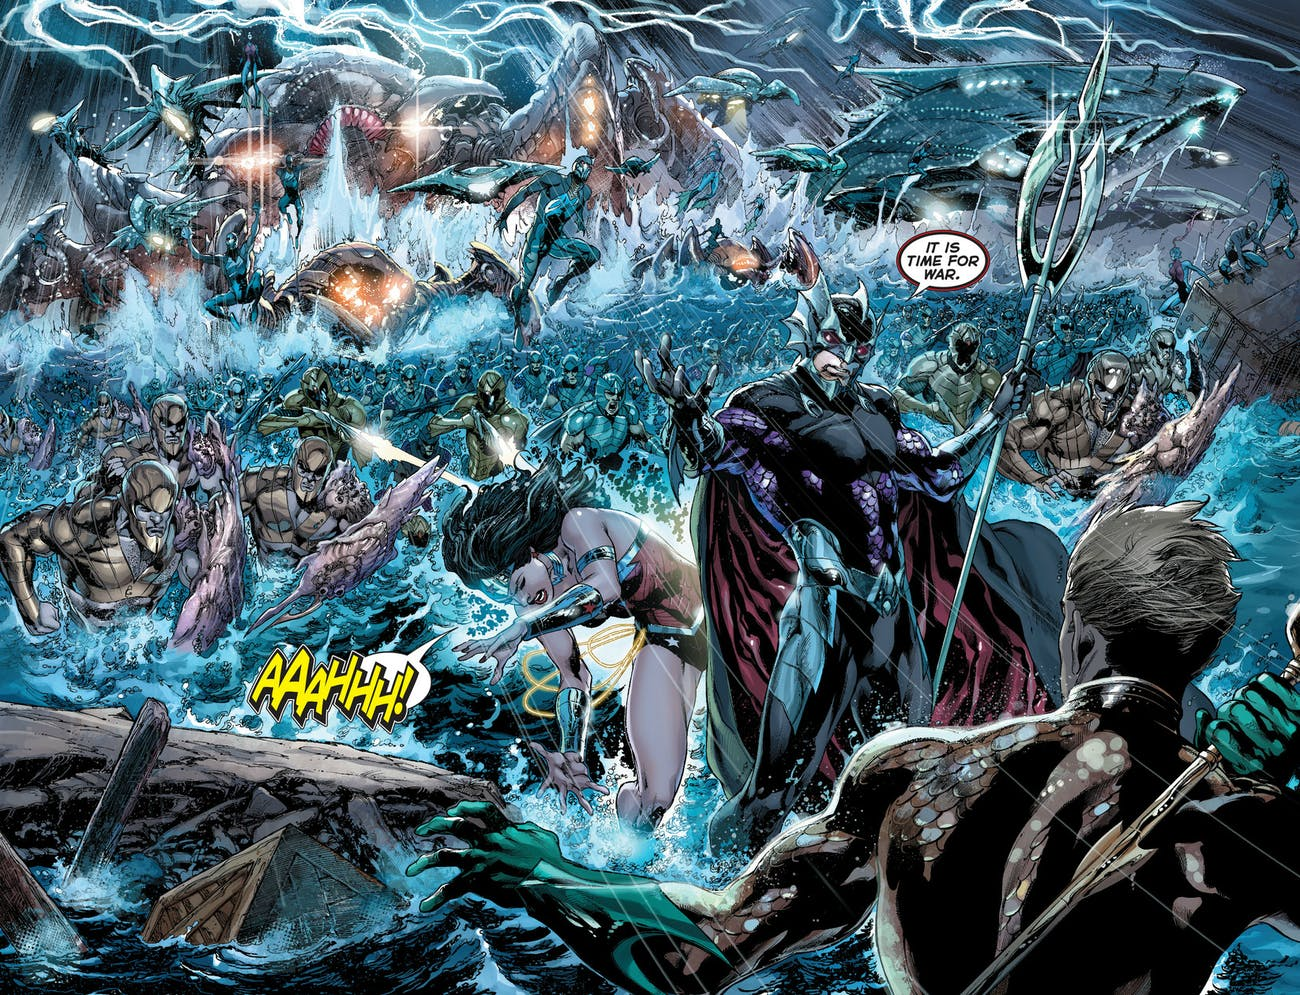 Ocean Master in DC's New 52 Comics